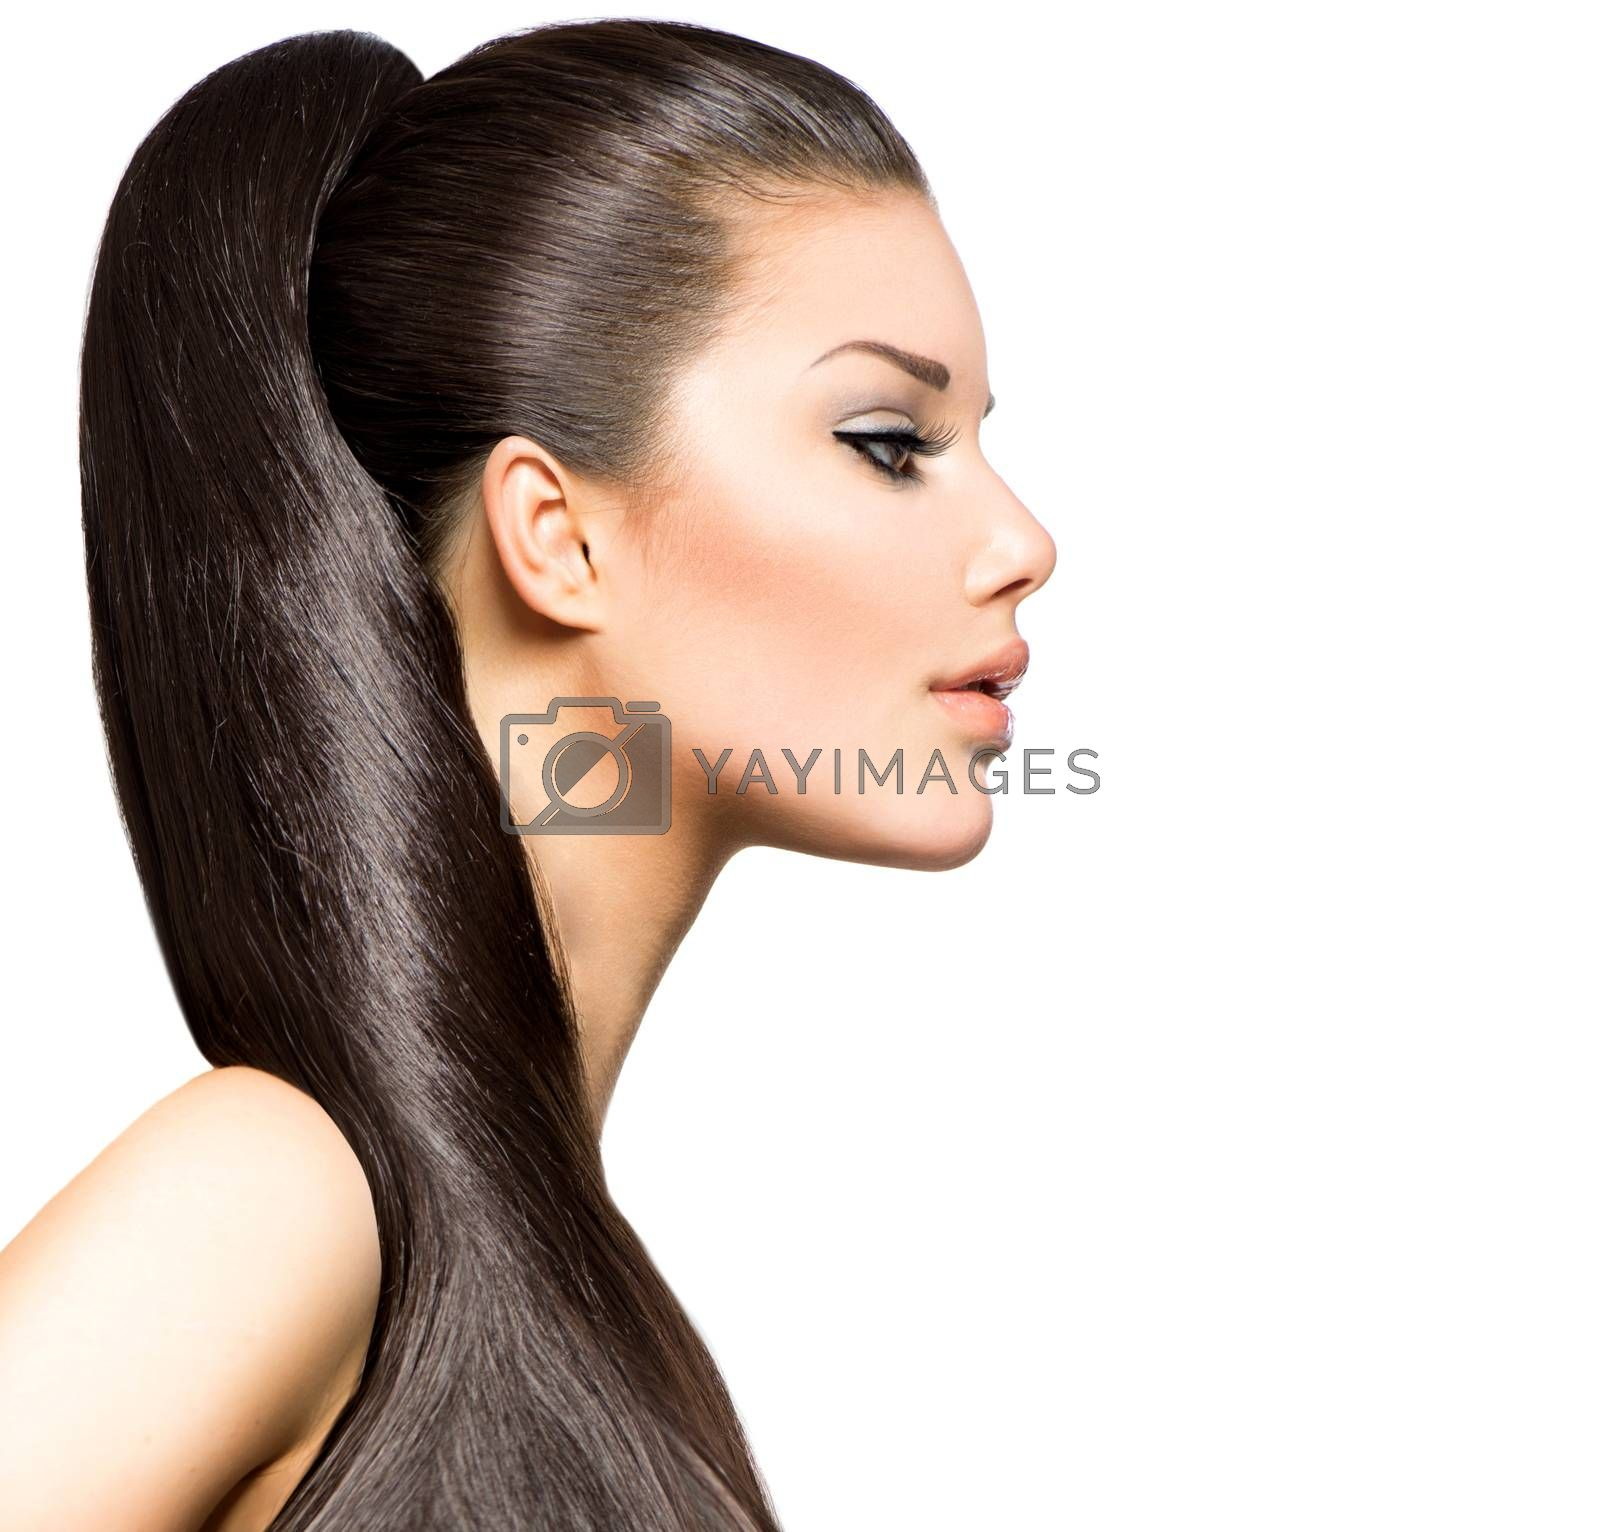 Ponytail Hairstyle. Beauty Brunette Fashion Model Girl by SubbotinaA